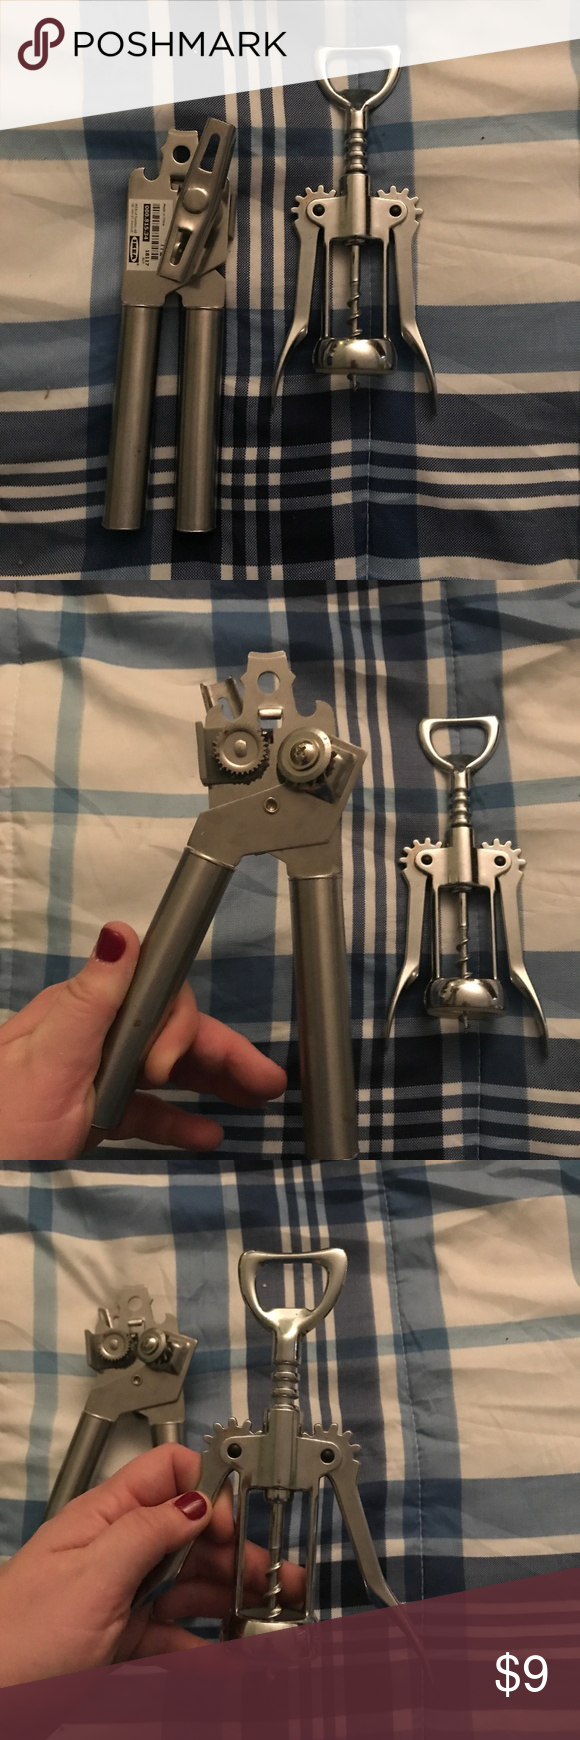 Ikea Bottle And Can Opener Never Used Bottle Opener And Can Opener Idealisk Co In 2020 Flaschenoffner Ikea Flaschen